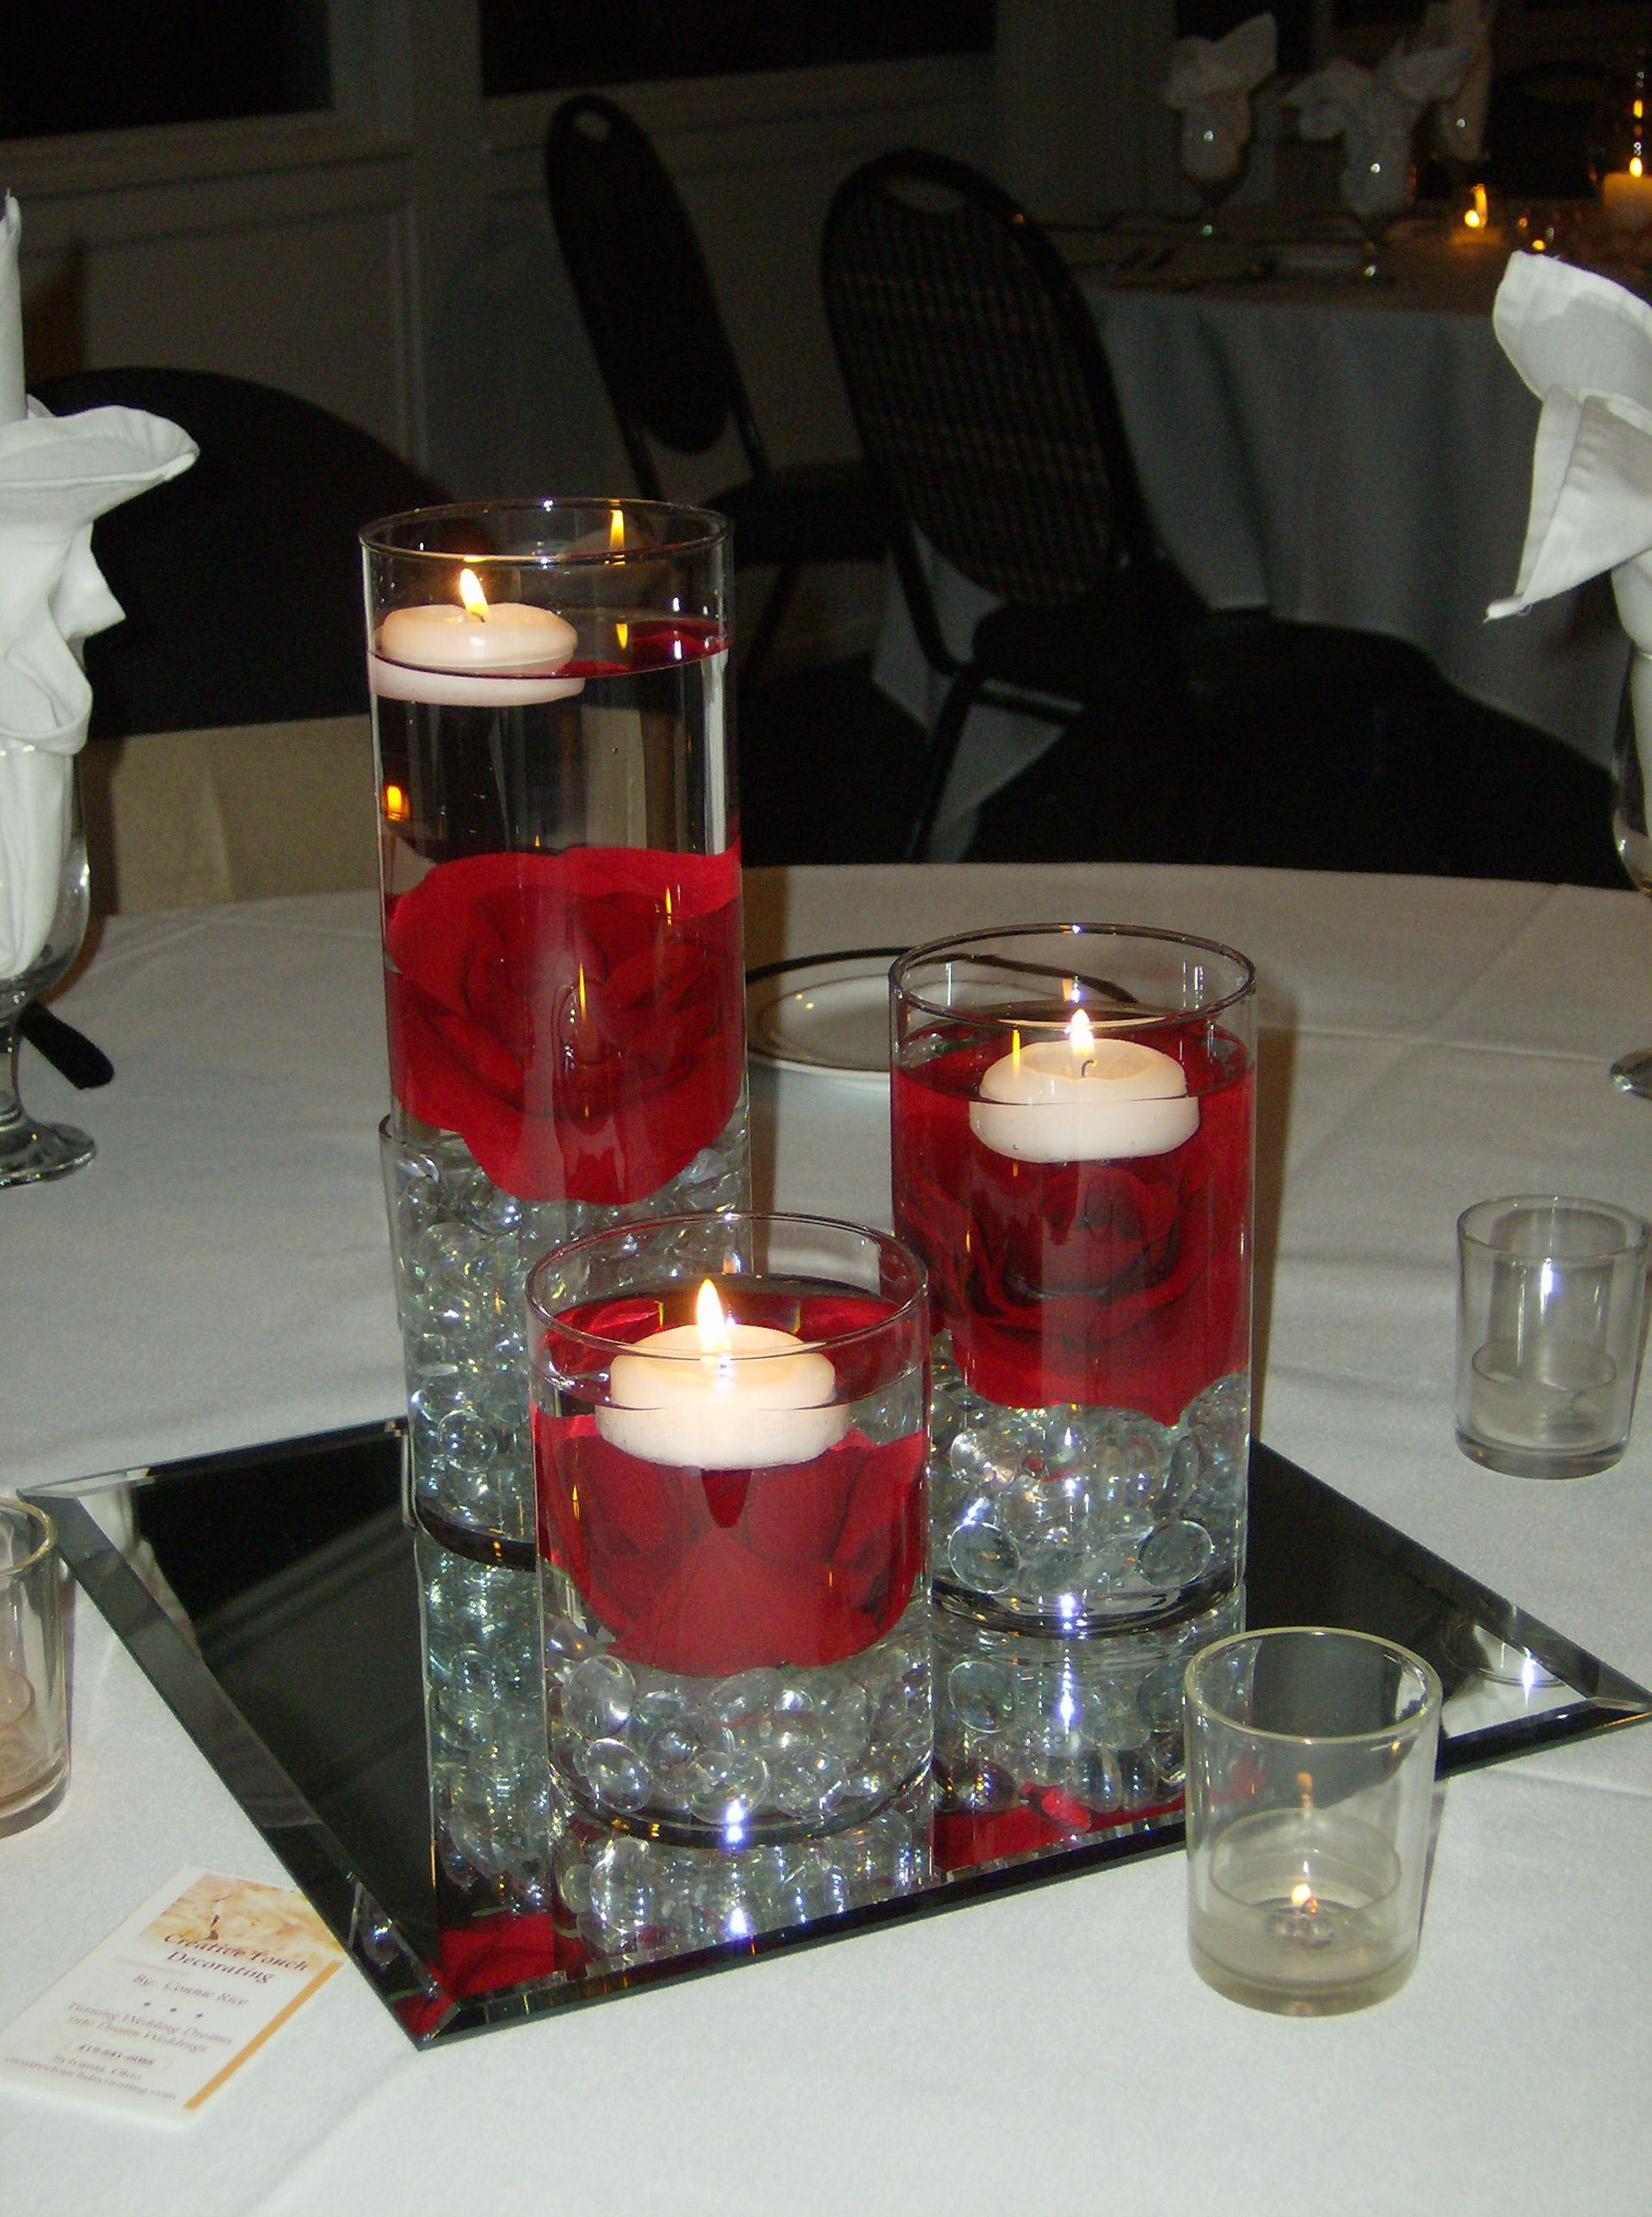 Pin By Dragonrider Xd On Red Rose Centerpieces Black And White Centerpieces Red And White Weddings White Centerpiece